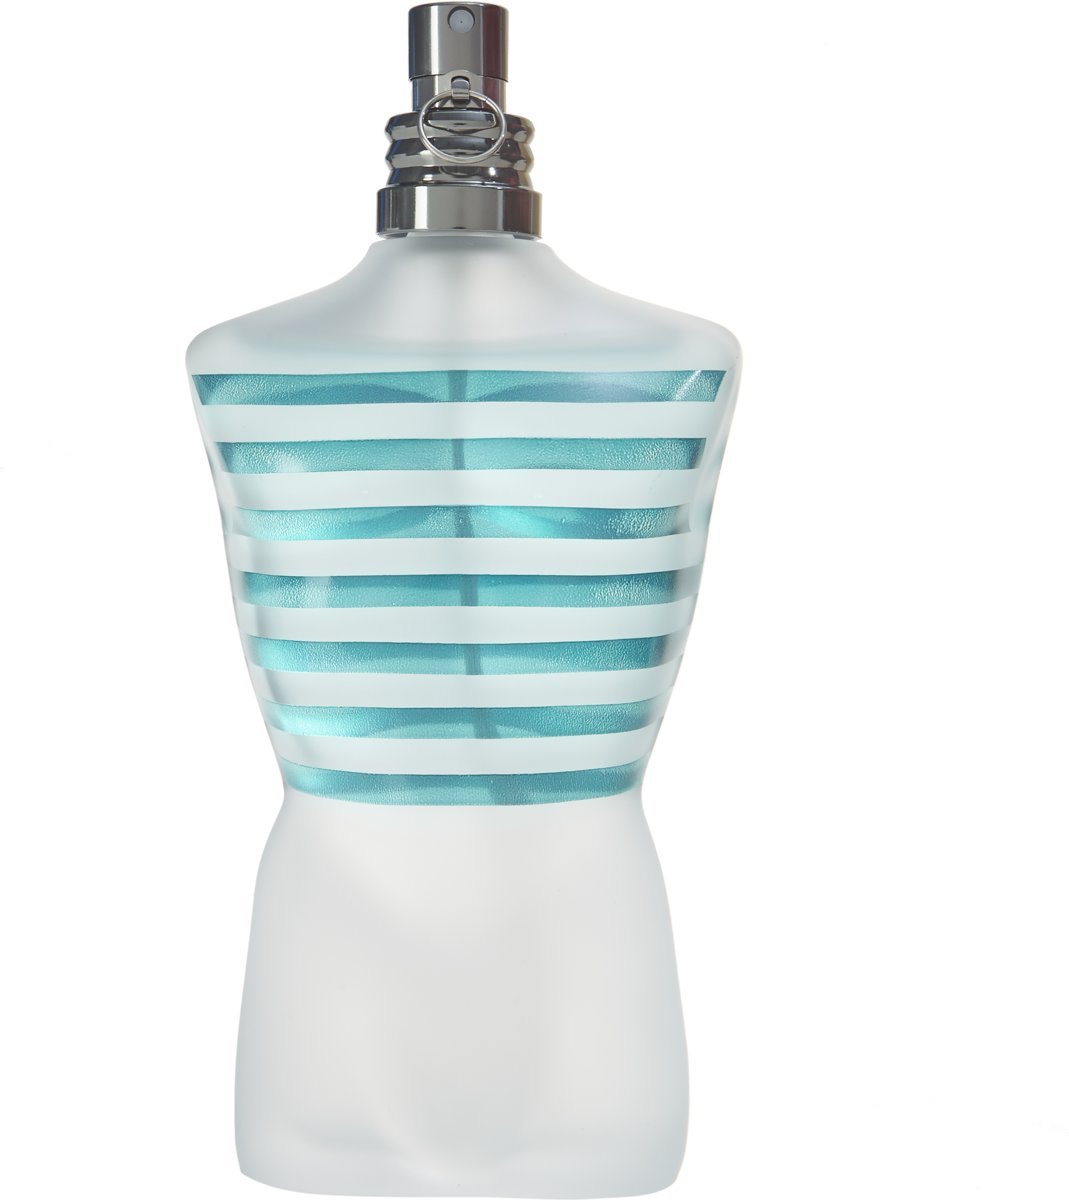 Jean Paul Gaultier Le Beau Male - 200 ml - Eau de toilette